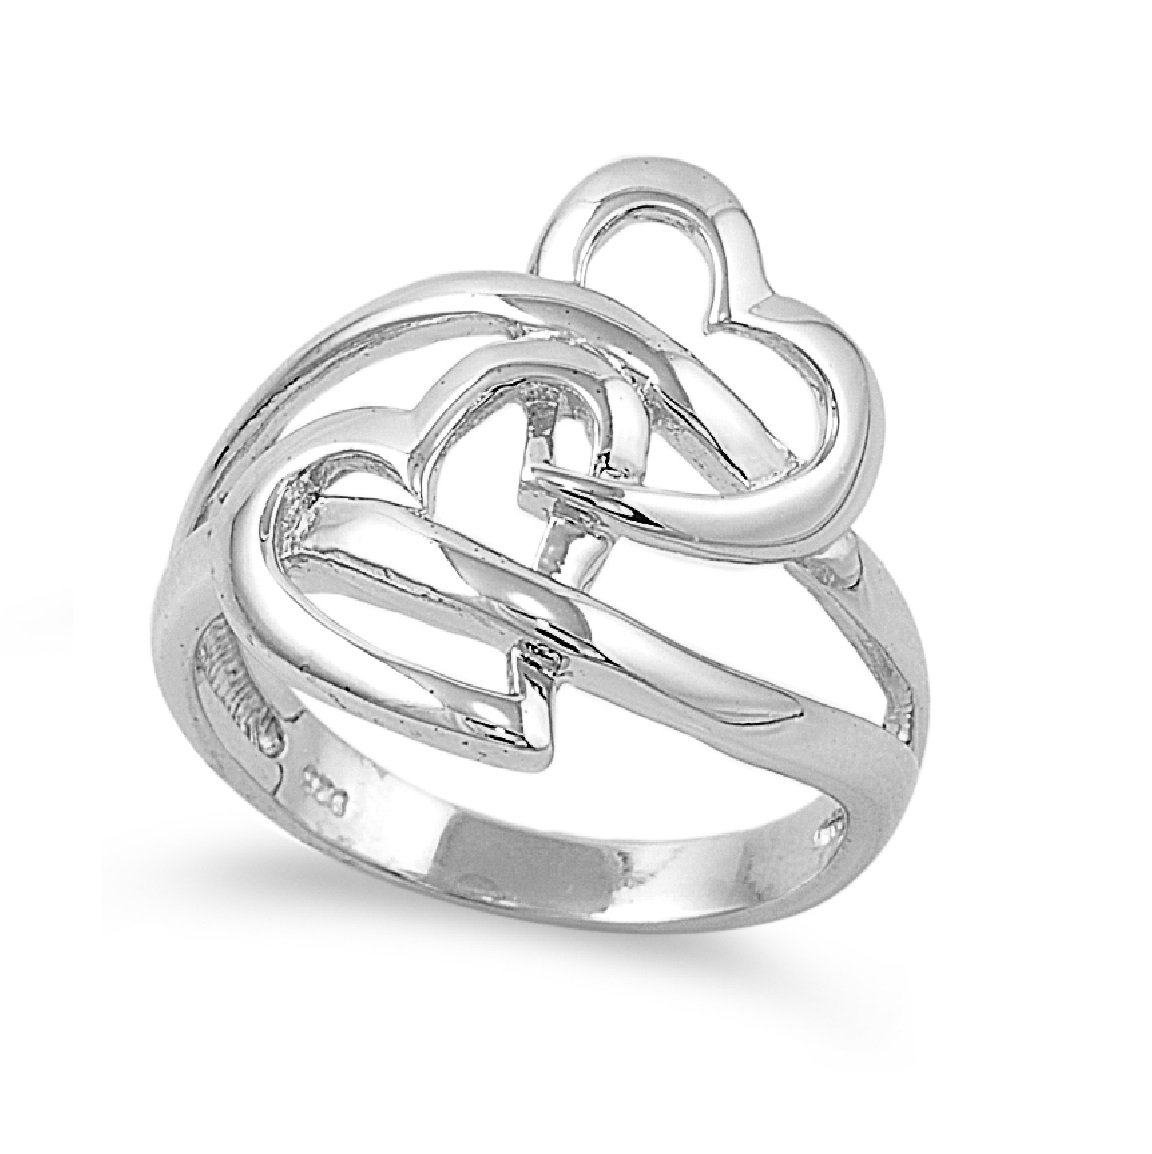 925 Sterling Silver Double Heart Design Ring Size 5